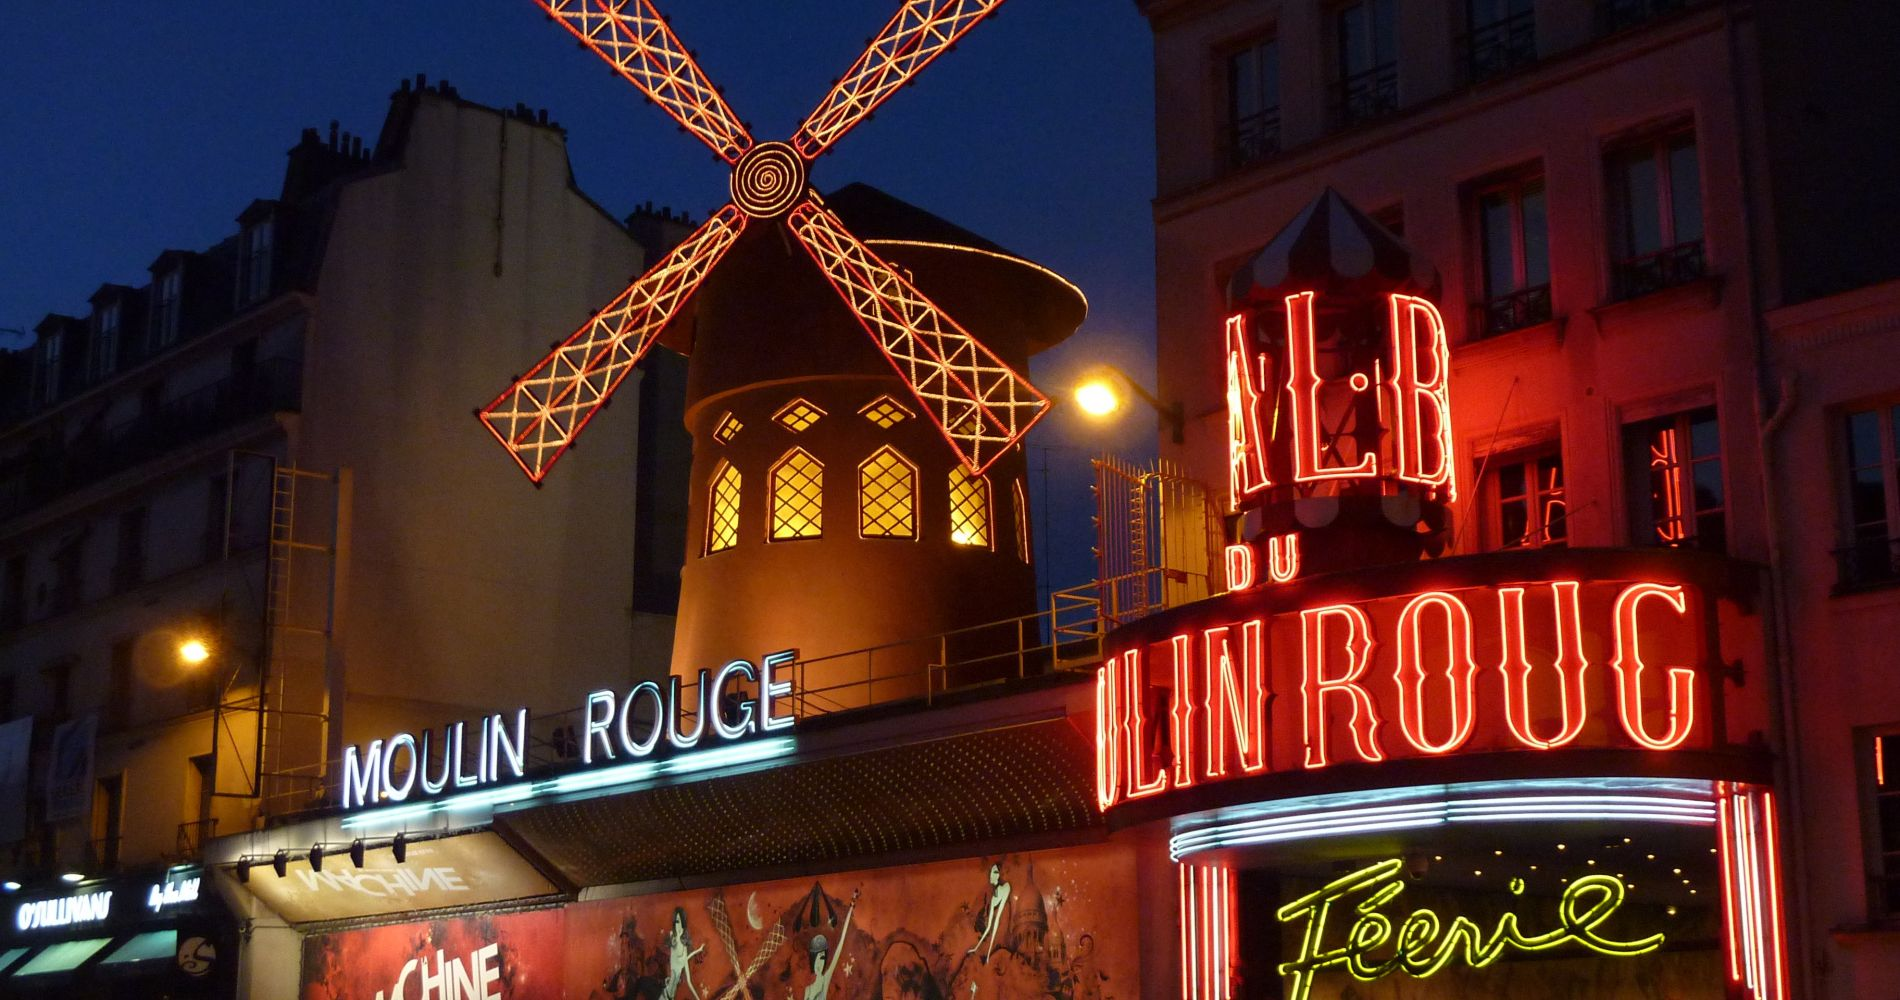 Moulin Rouge show with champagne Paris Tinggly Experience Gifts